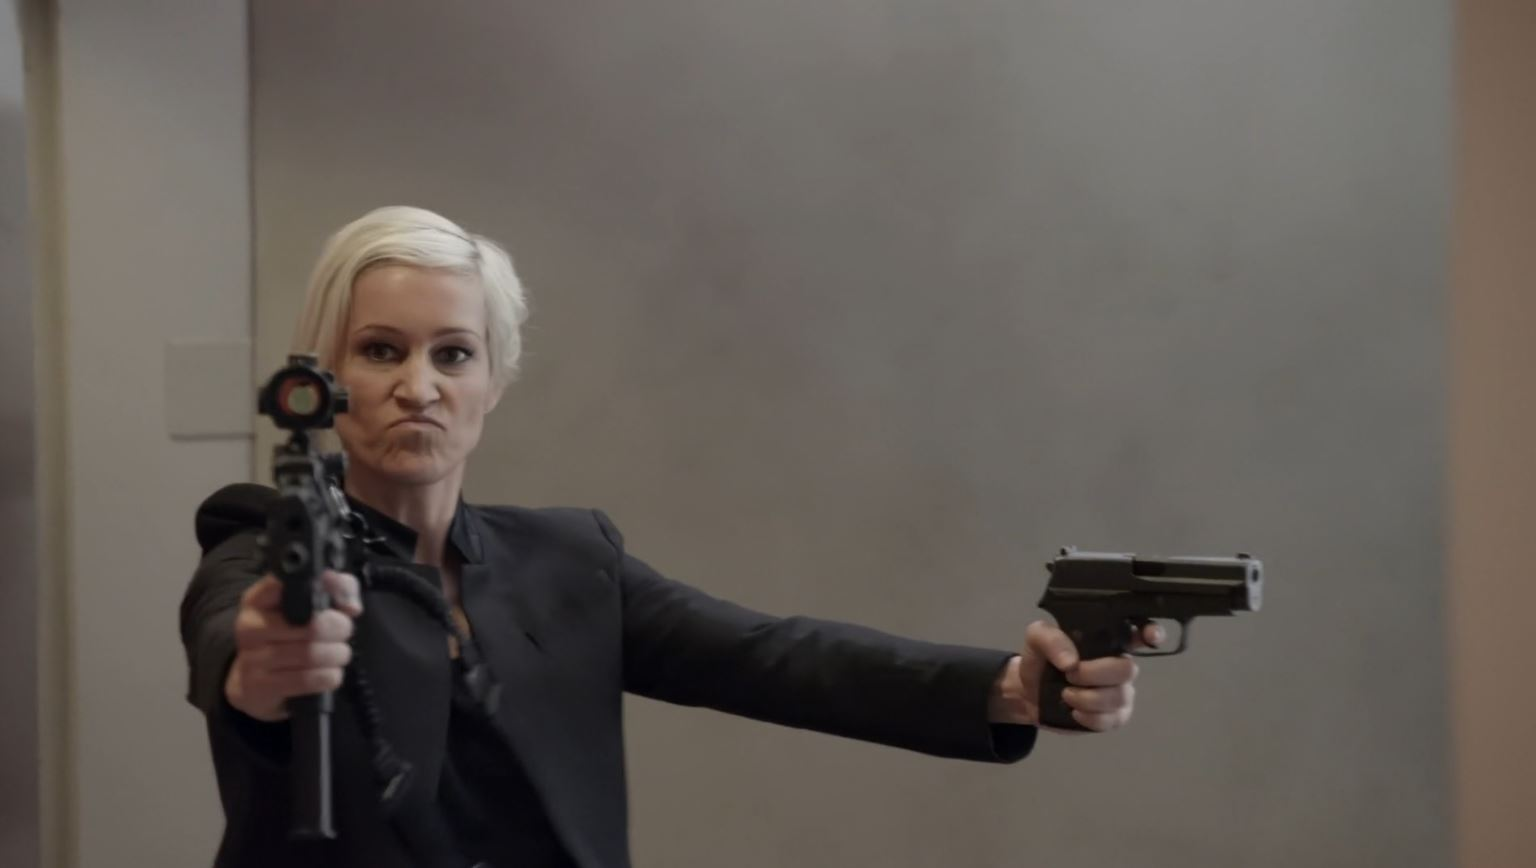 Continuum Season 3 Finale Last Minute Review - Luvia Petersen as Garza wielding two guns